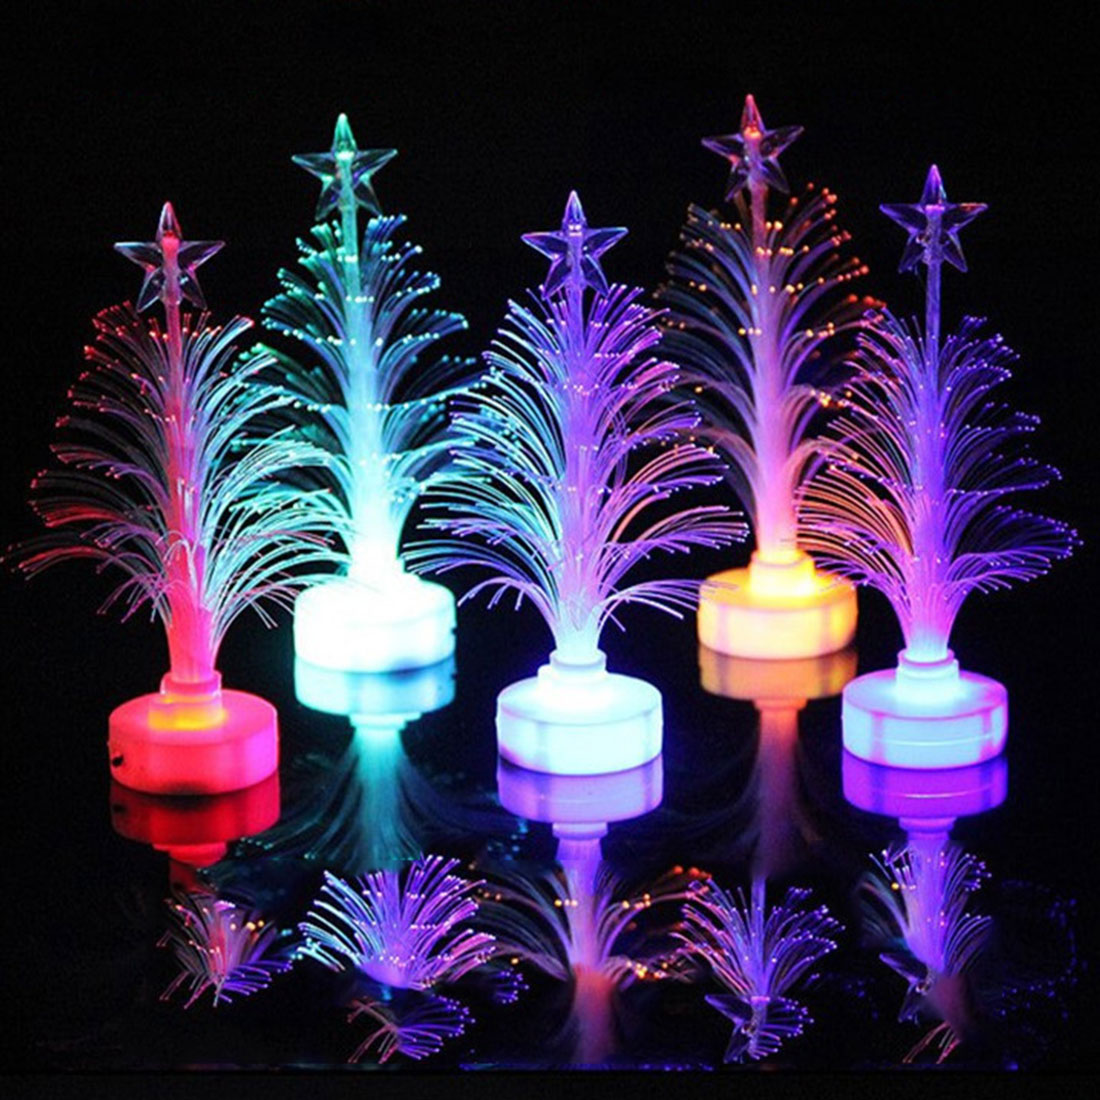 Us 0 83 15 Off Night Light Decoration Lamp Led Glow Stick Carnival Party Flash Fiber Tree Colorful Mini Christmas In